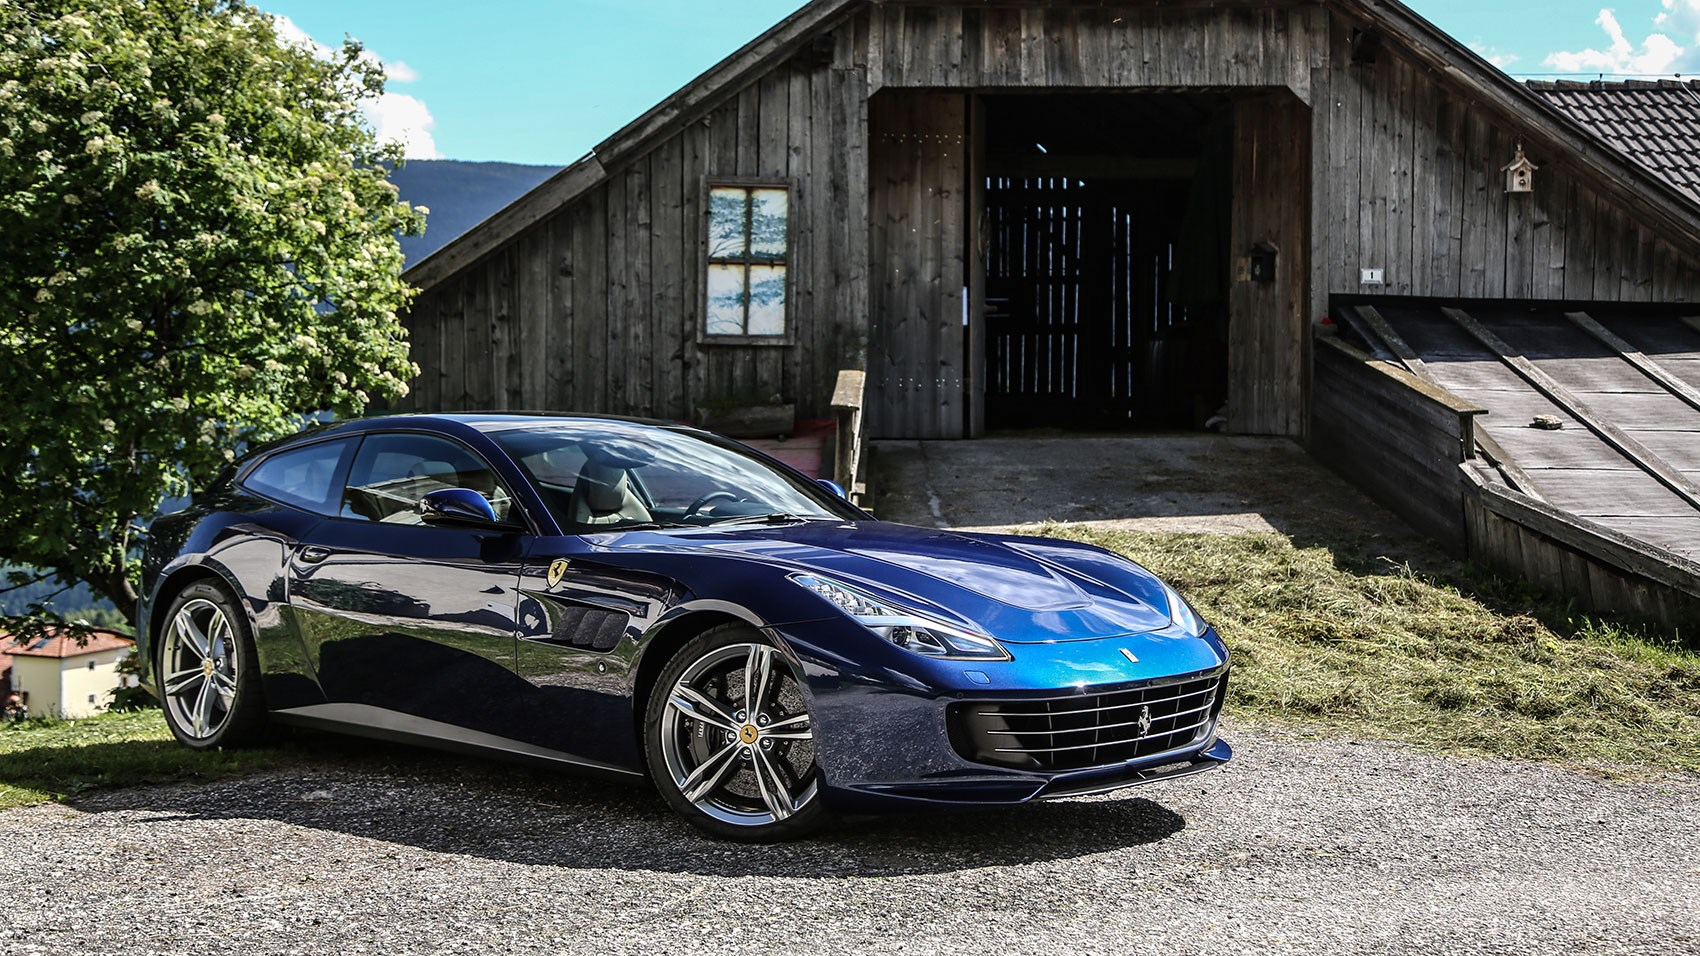 Ferrari Gtc4lusso 2016 Review Car Magazine